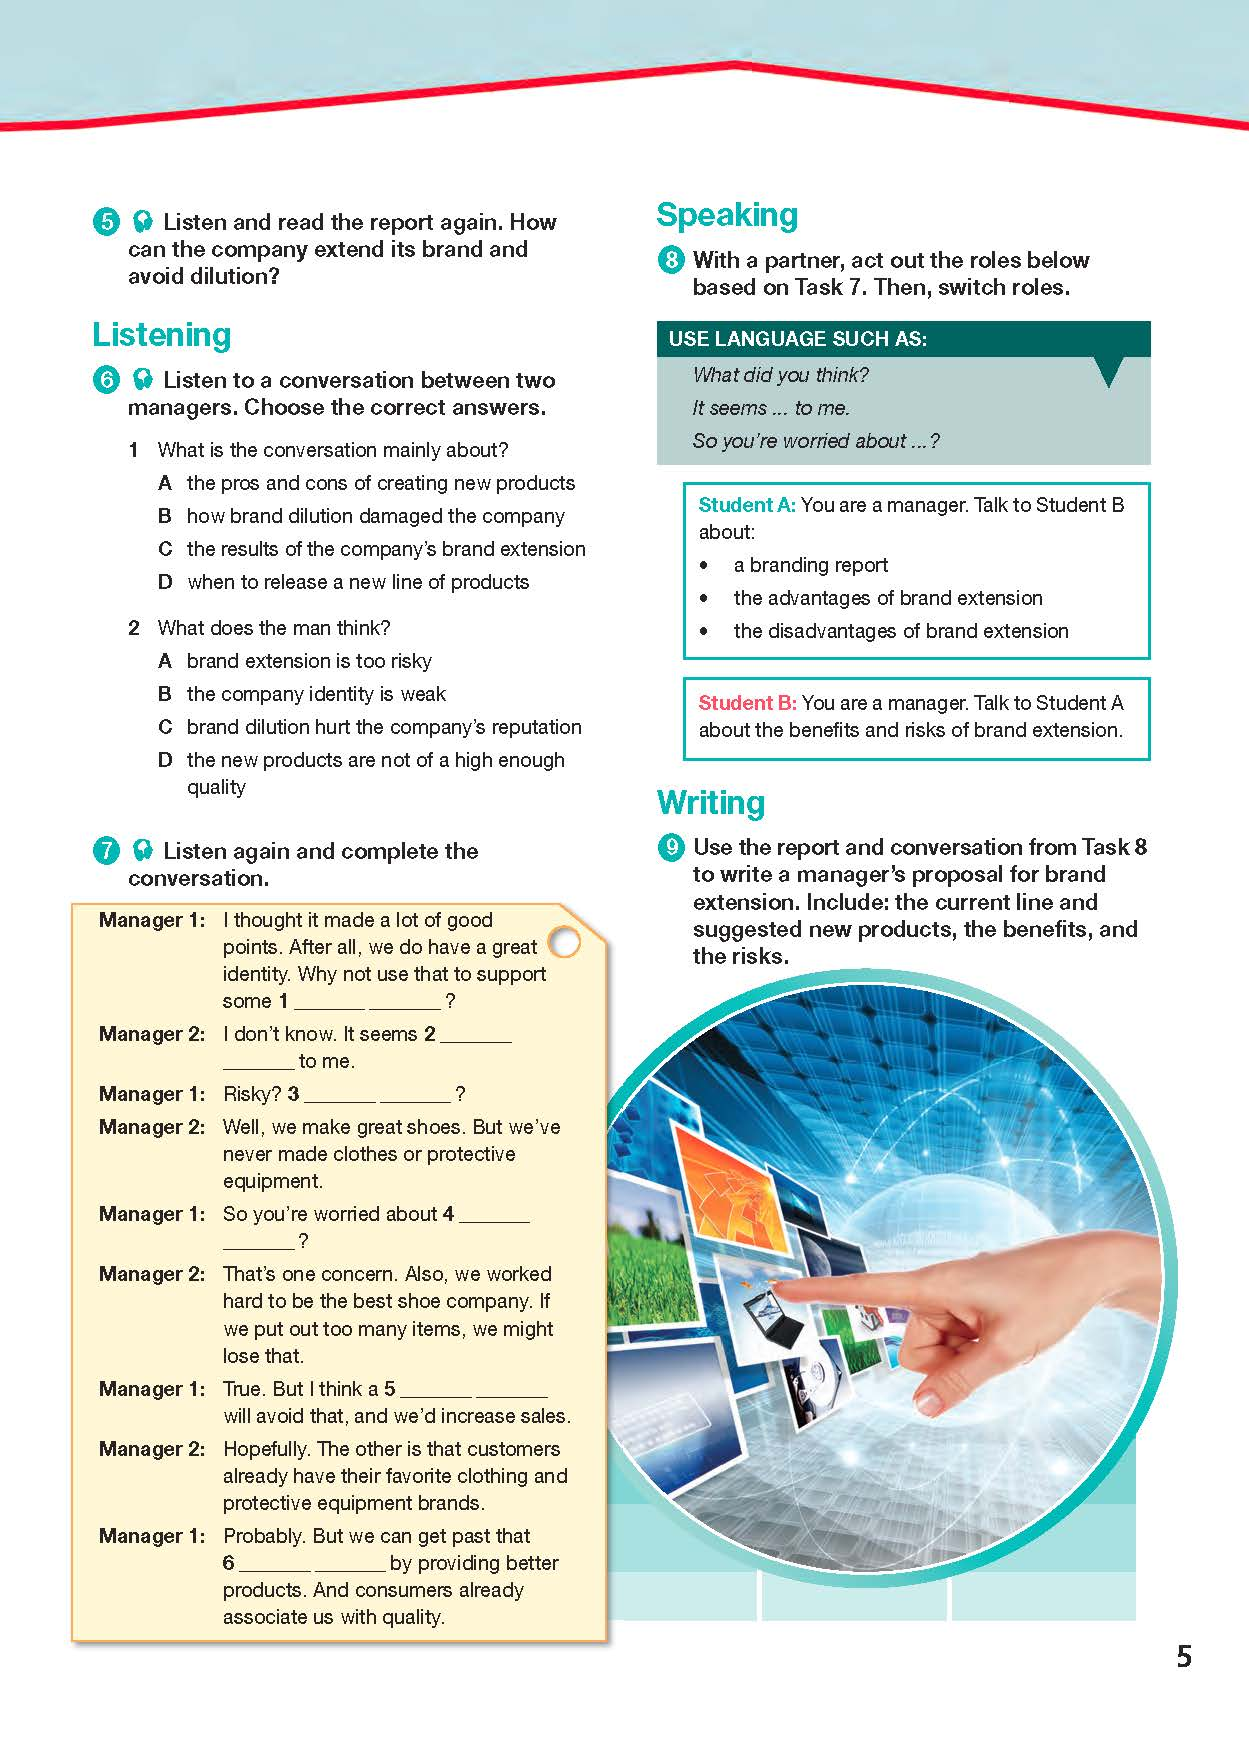 ESP English for Specific Purposes - Career Paths: Sales & Marketing - Sample Page 4